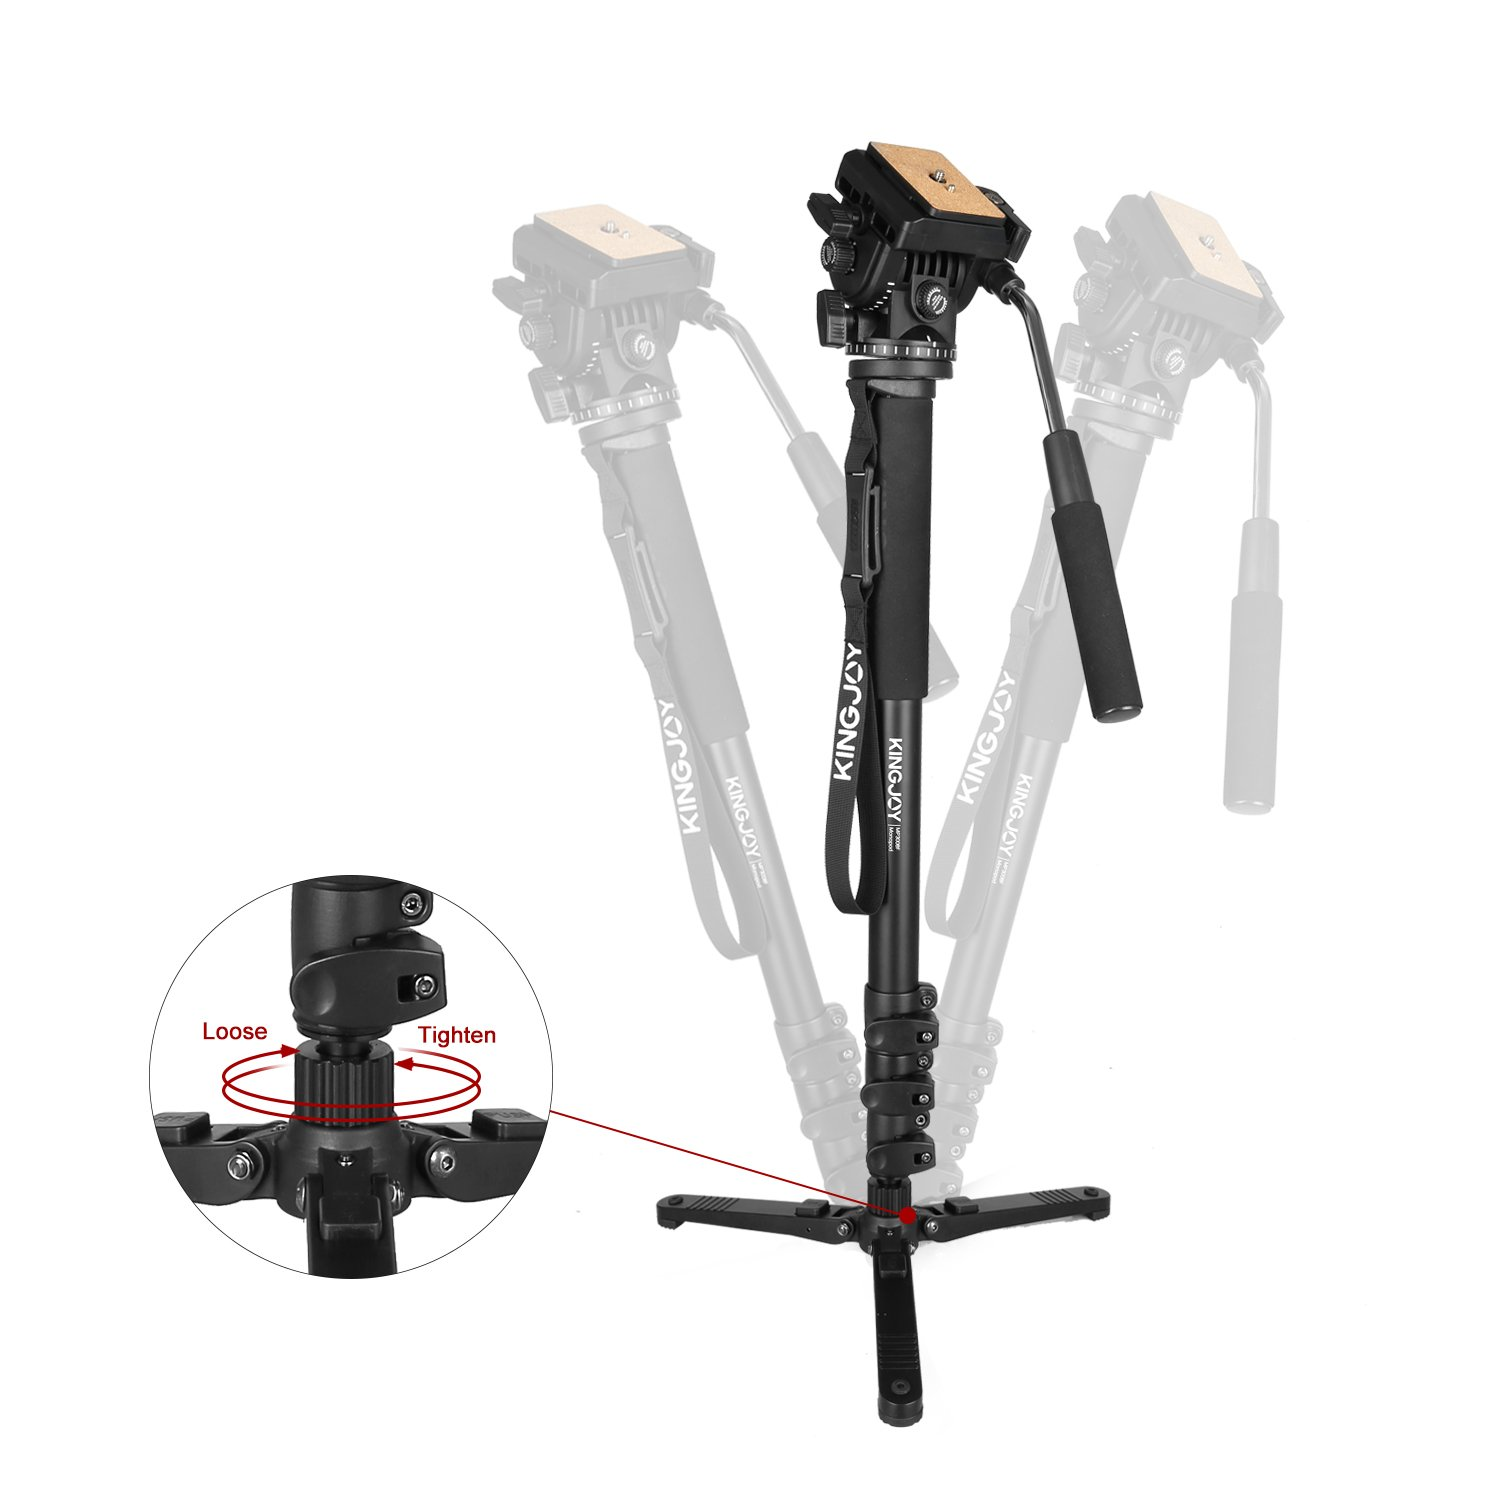 65-Inch Lightweight Aluminum Monopod Kit Flip Lock 4-Section Leg ,KINGJOY MP3008F Monopod and VT1510 Fluid Head with Removable Support Stand Max Load 8.8 LB for SLR and DSLR Cameras or Video